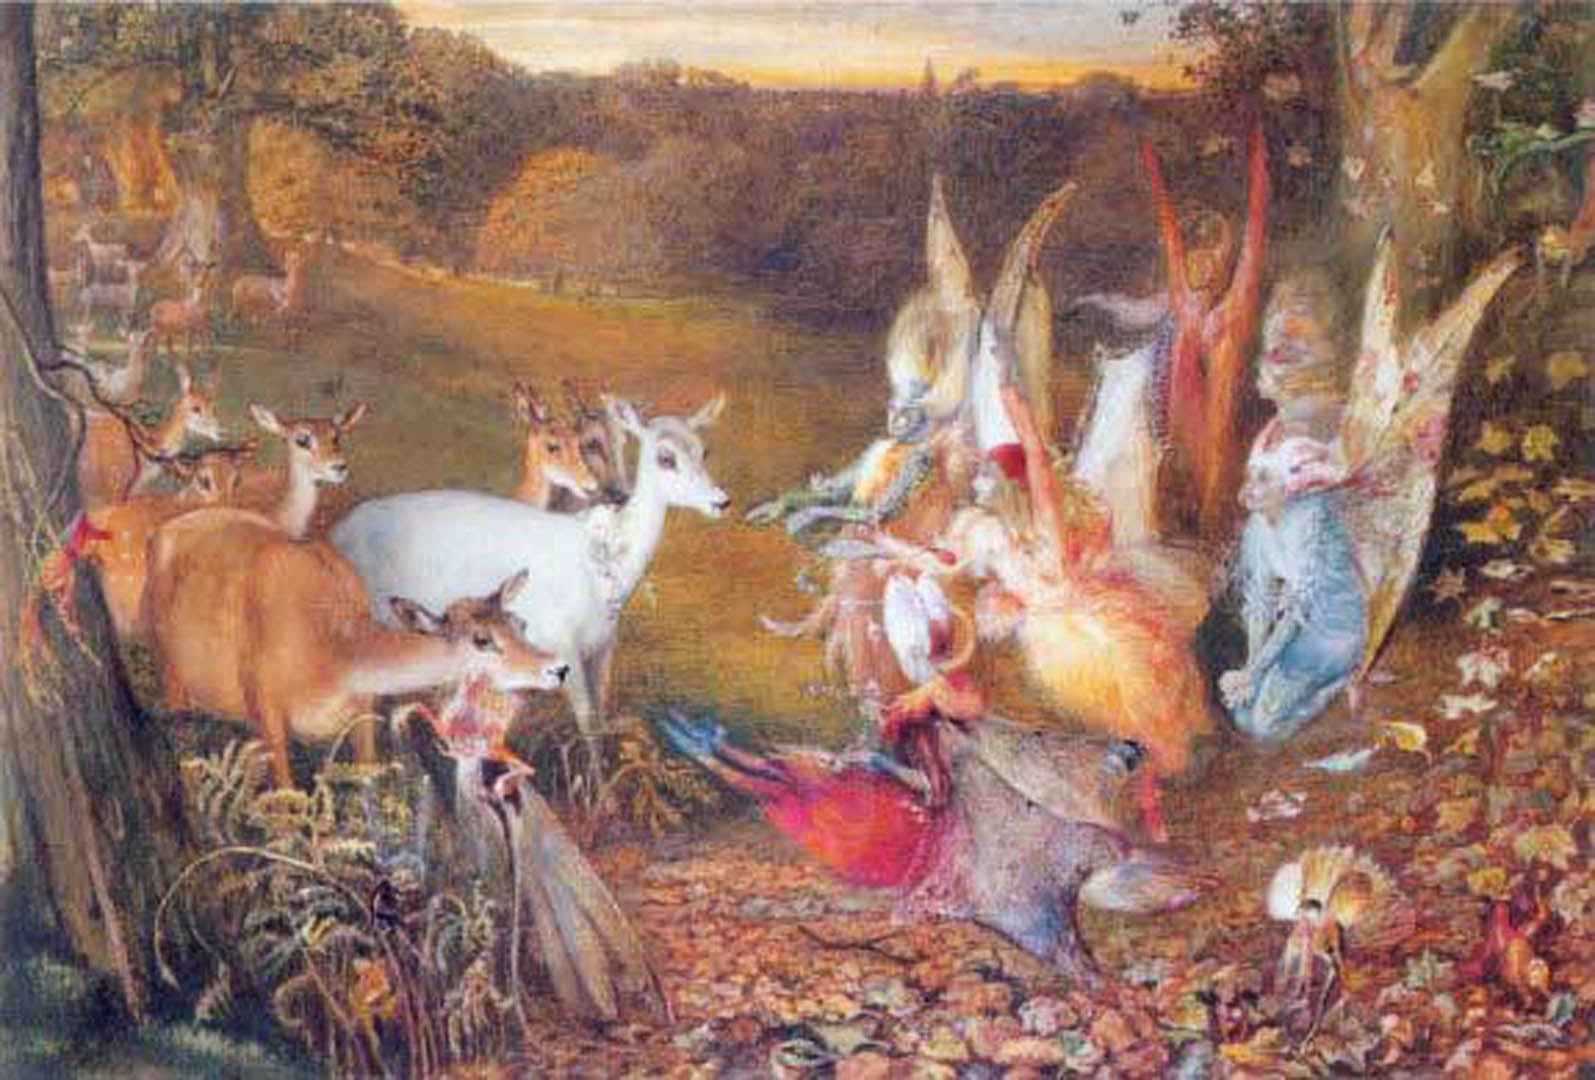 Previous Fairy Wallpaper Enchanted Forest